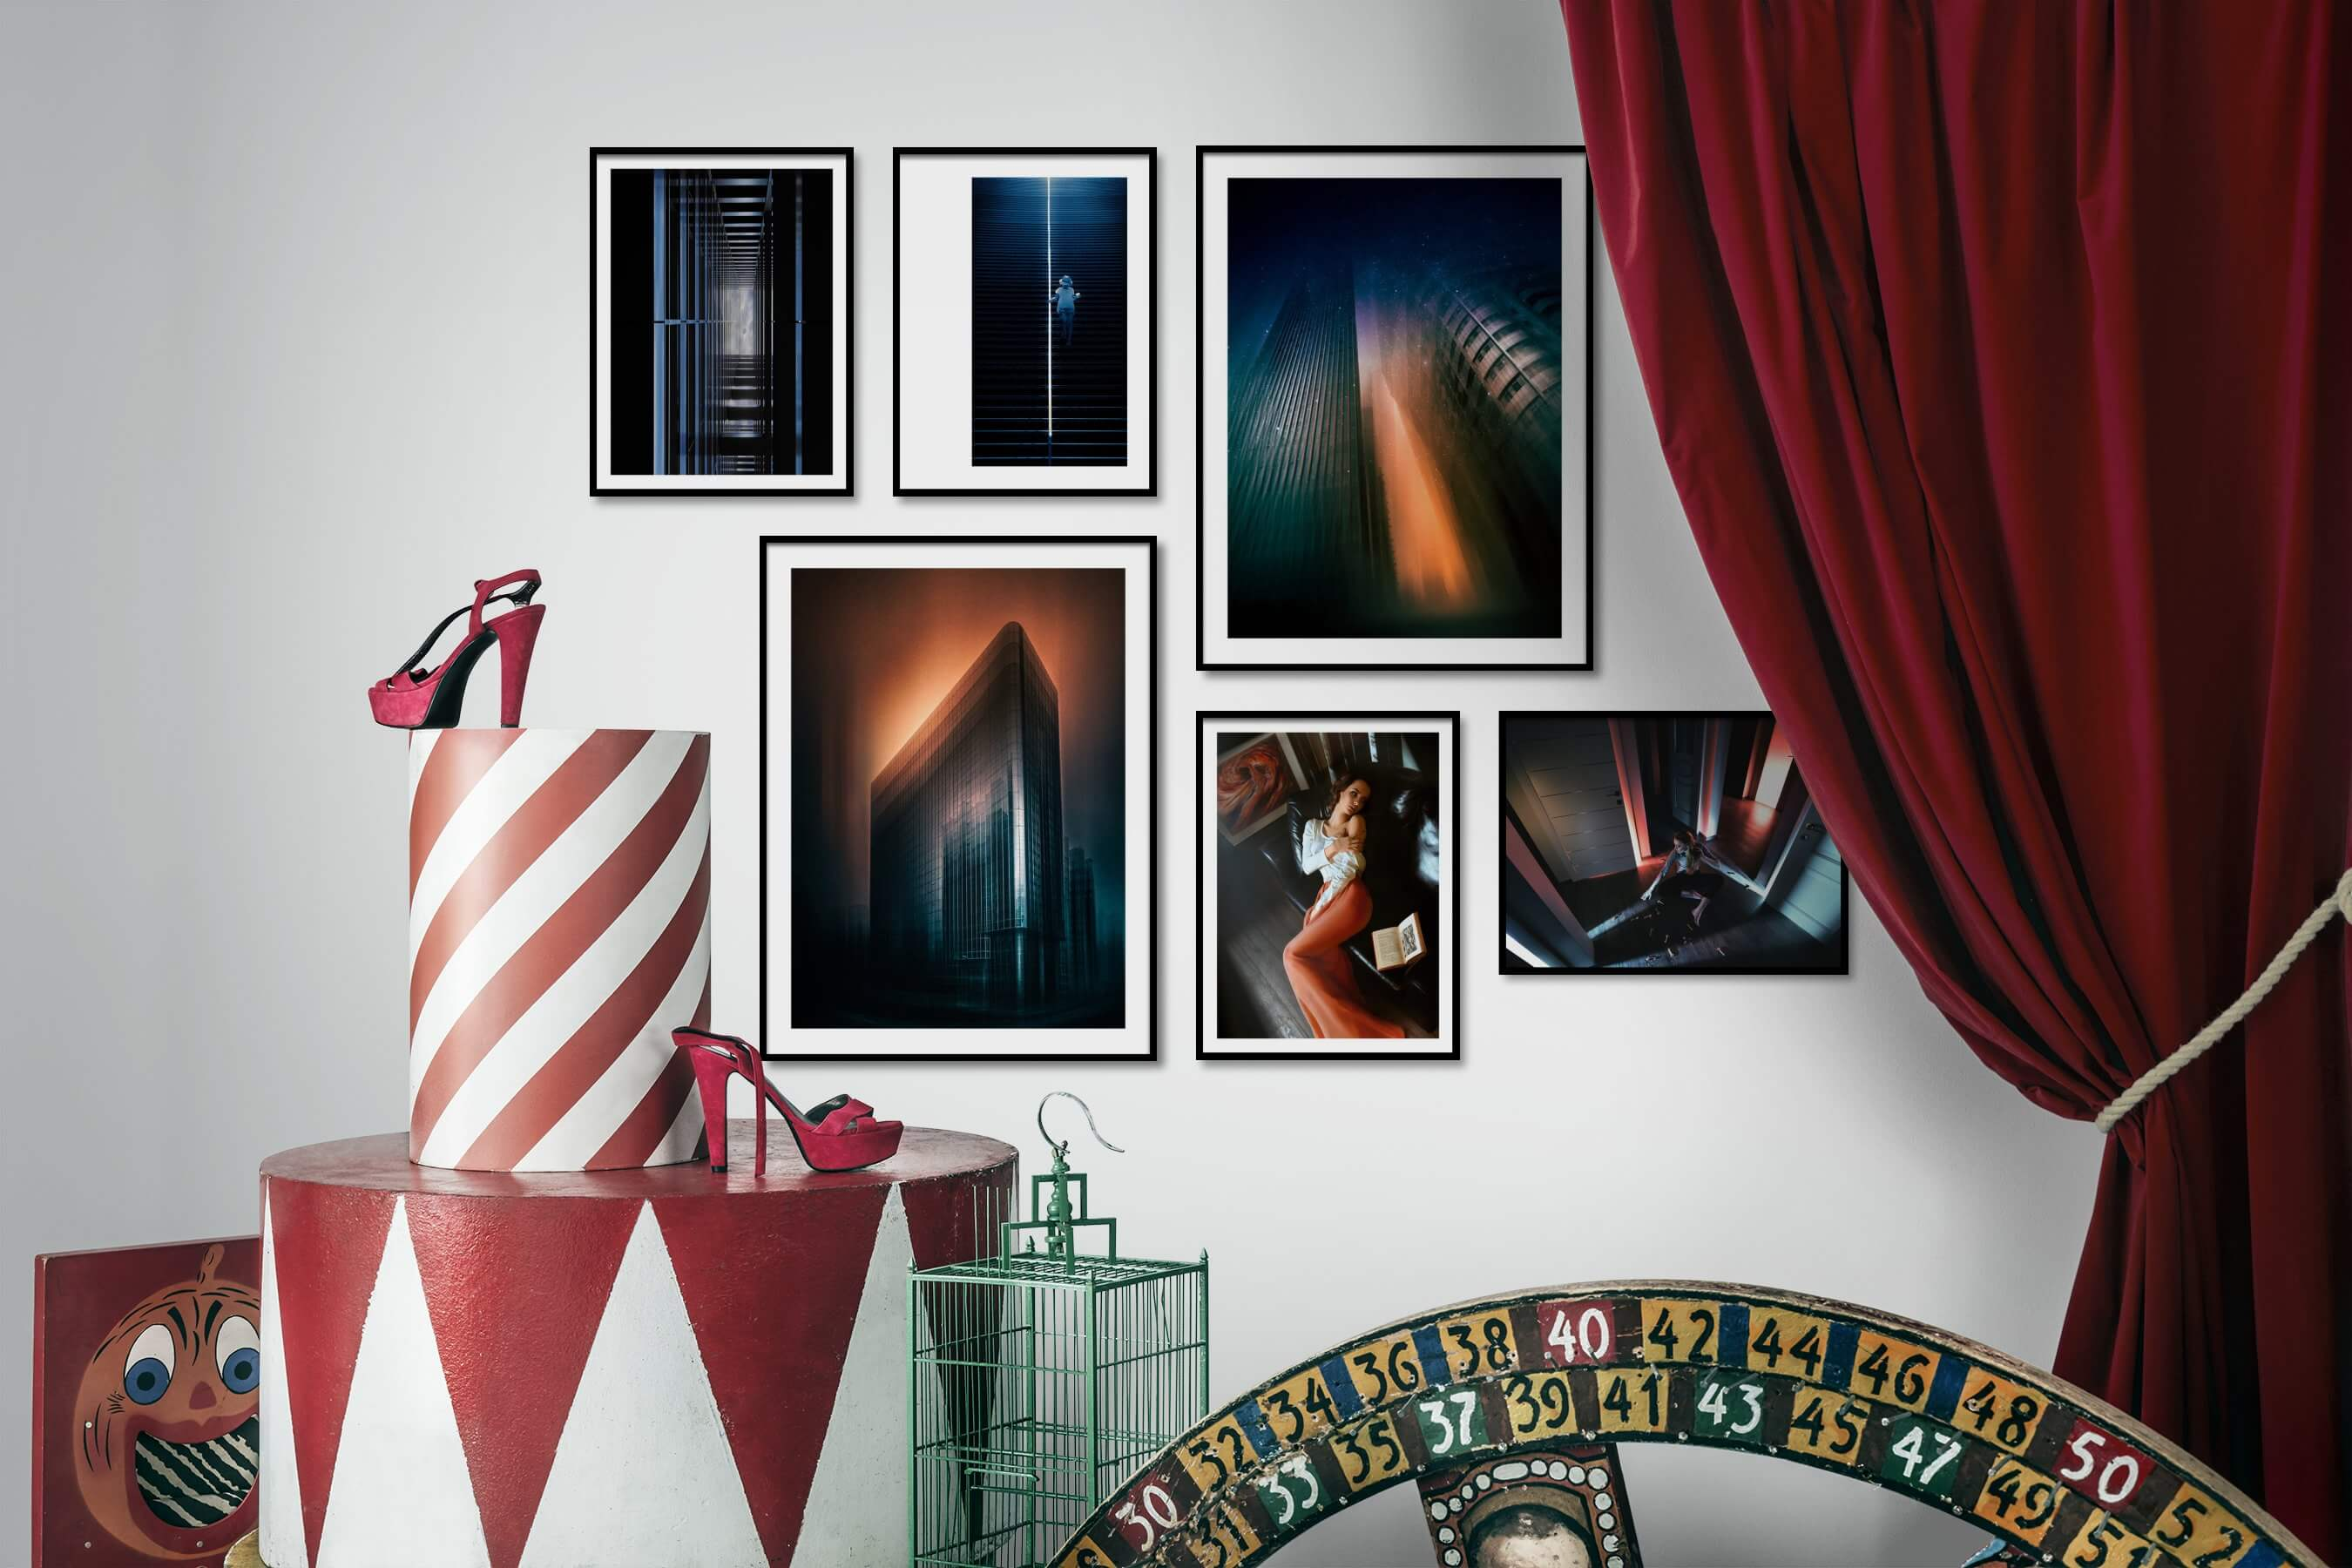 Gallery wall idea with six framed pictures arranged on a wall depicting For the Moderate, Artsy, City Life, and Fashion & Beauty